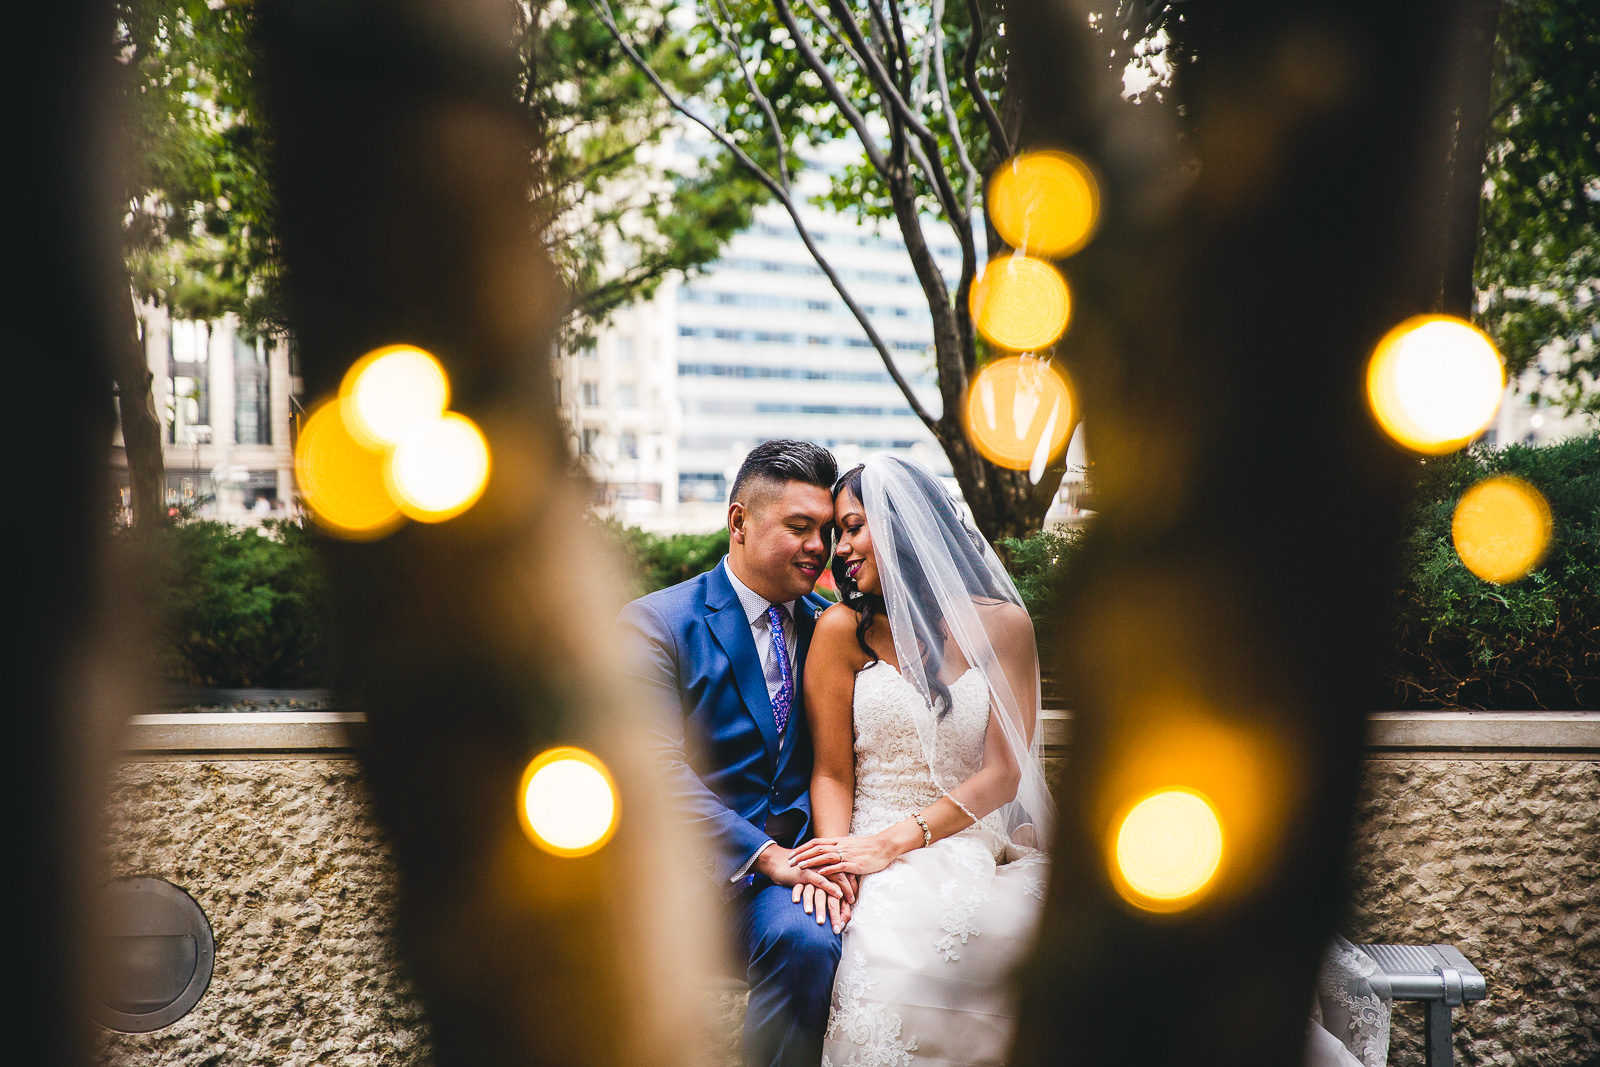 116 chicago wedding photographer best portraits during weddings review - 2018 in Review // My Favorite Chicago Wedding Photography Portraits